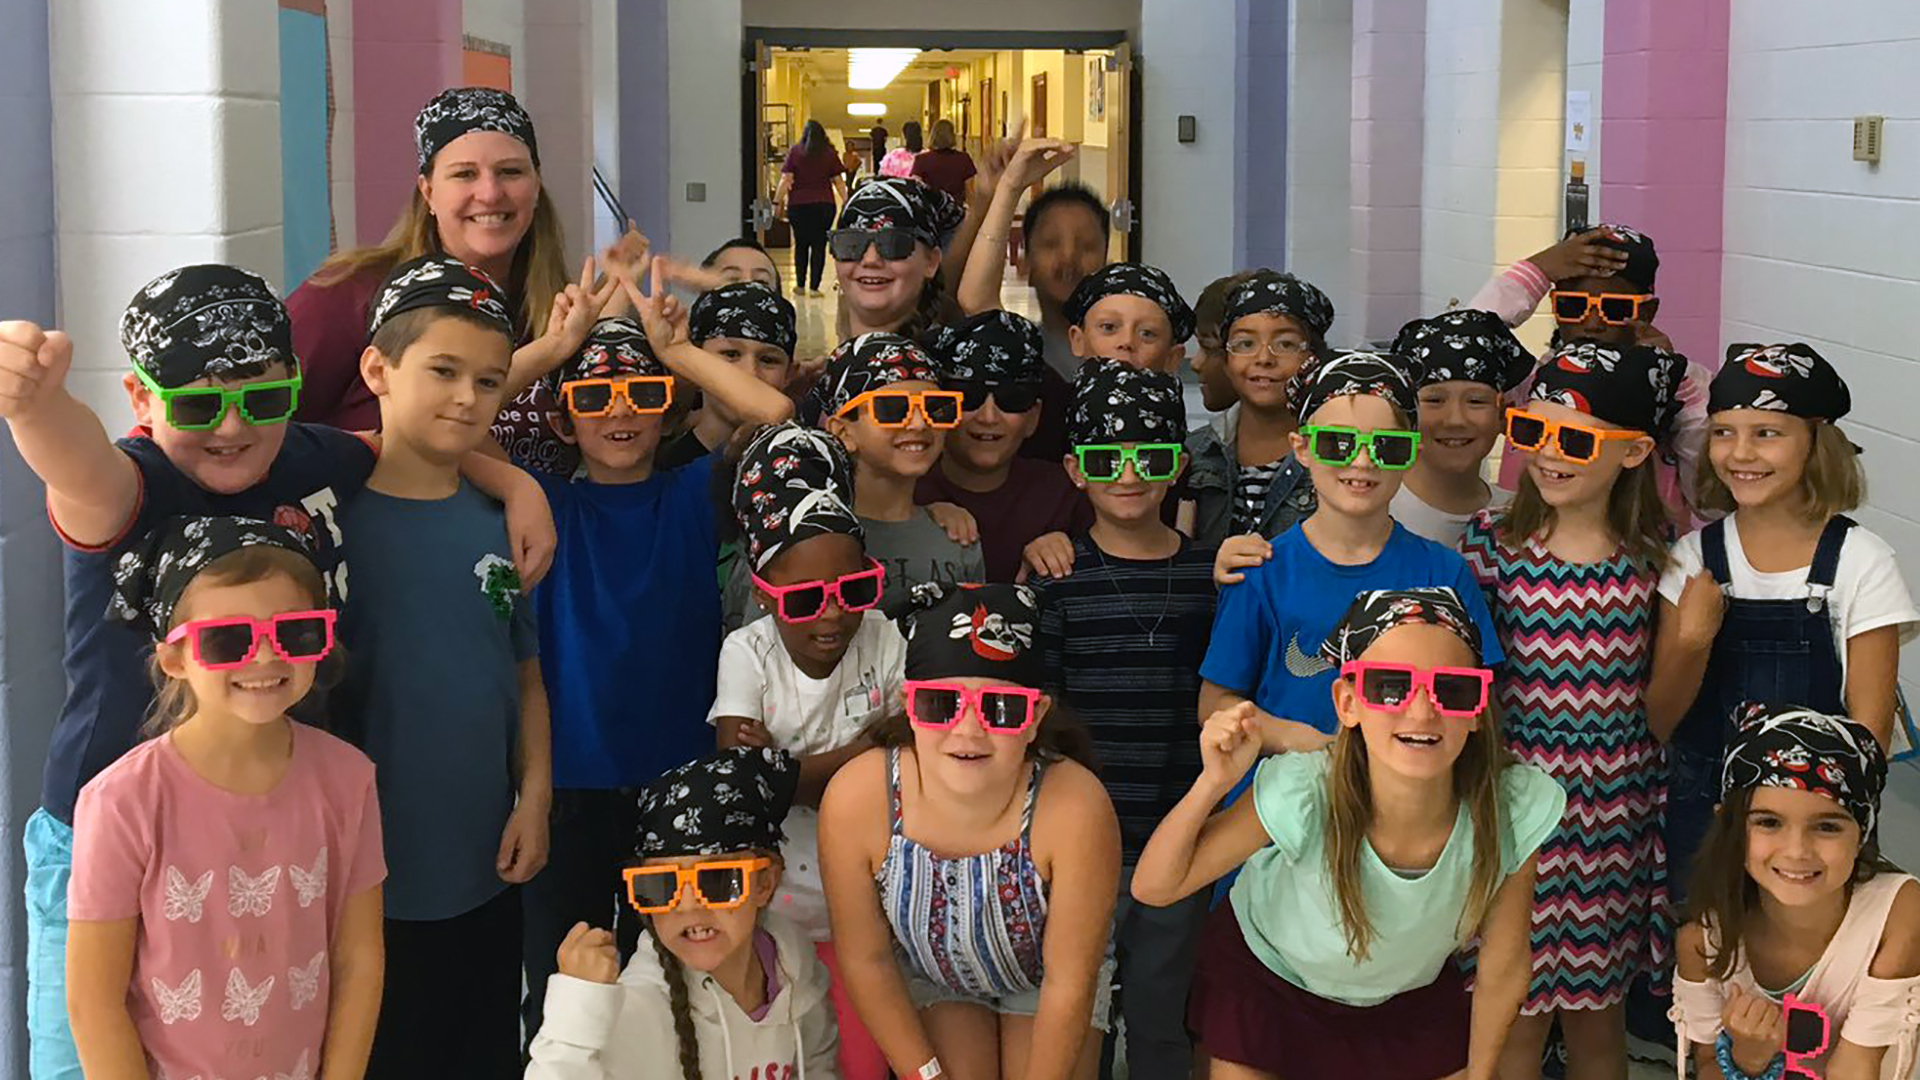 Large group of students in school hallway with colorful sunglasses on and posing for a group photo.